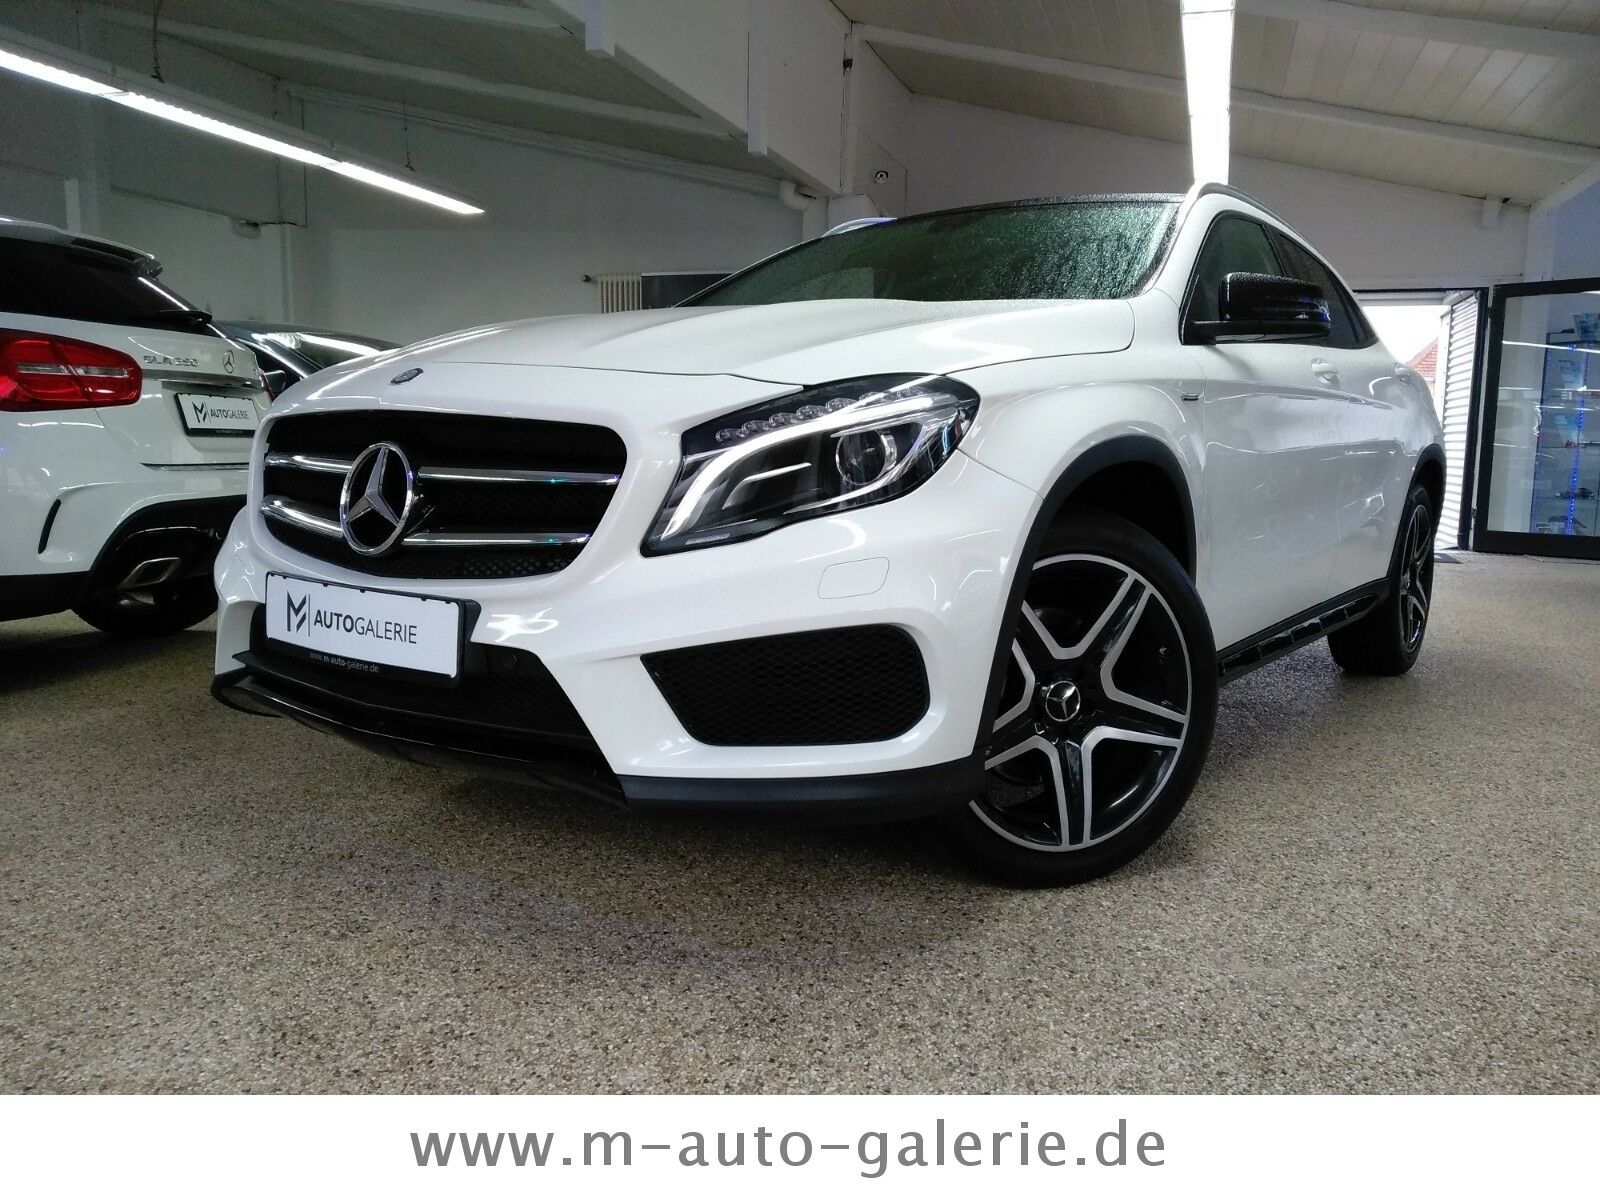 MERCEDES-BENZ GLA-Klasse *GLA 250*4Matic*Edition 1*AMG*